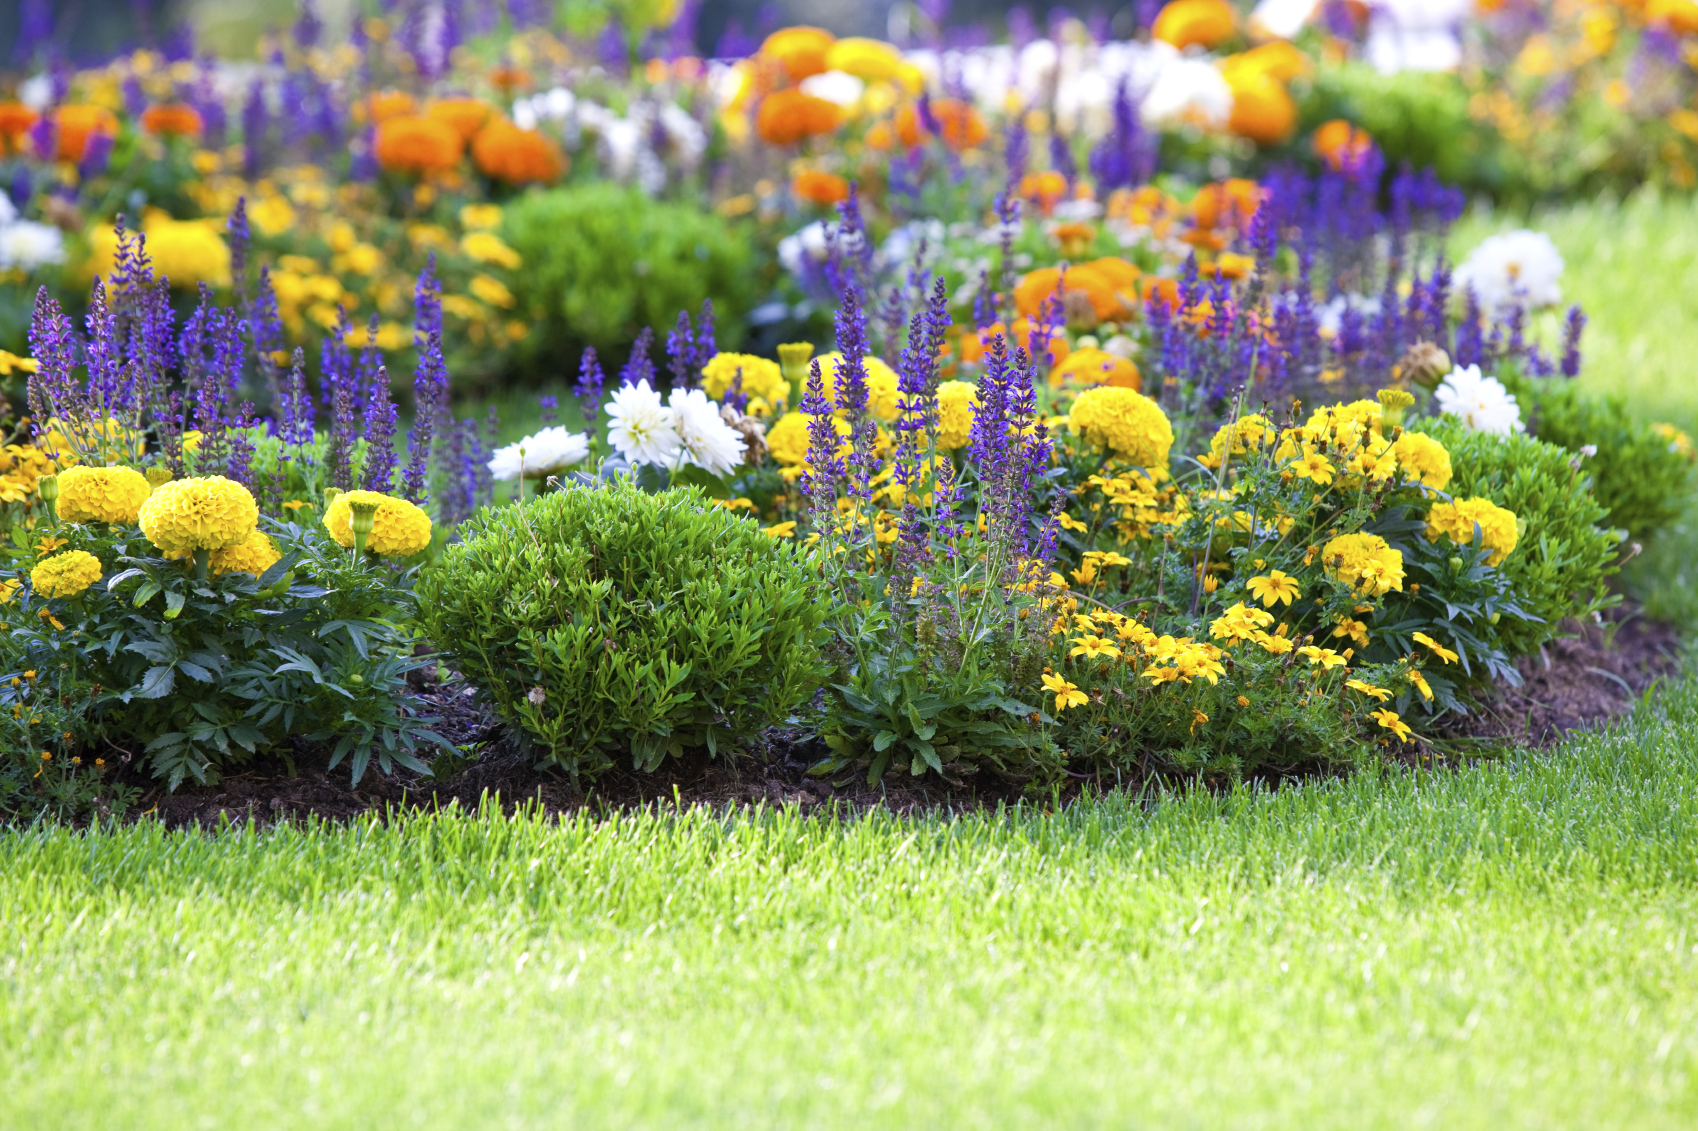 Flower gardening how to start a flower garden for Flower bed designs